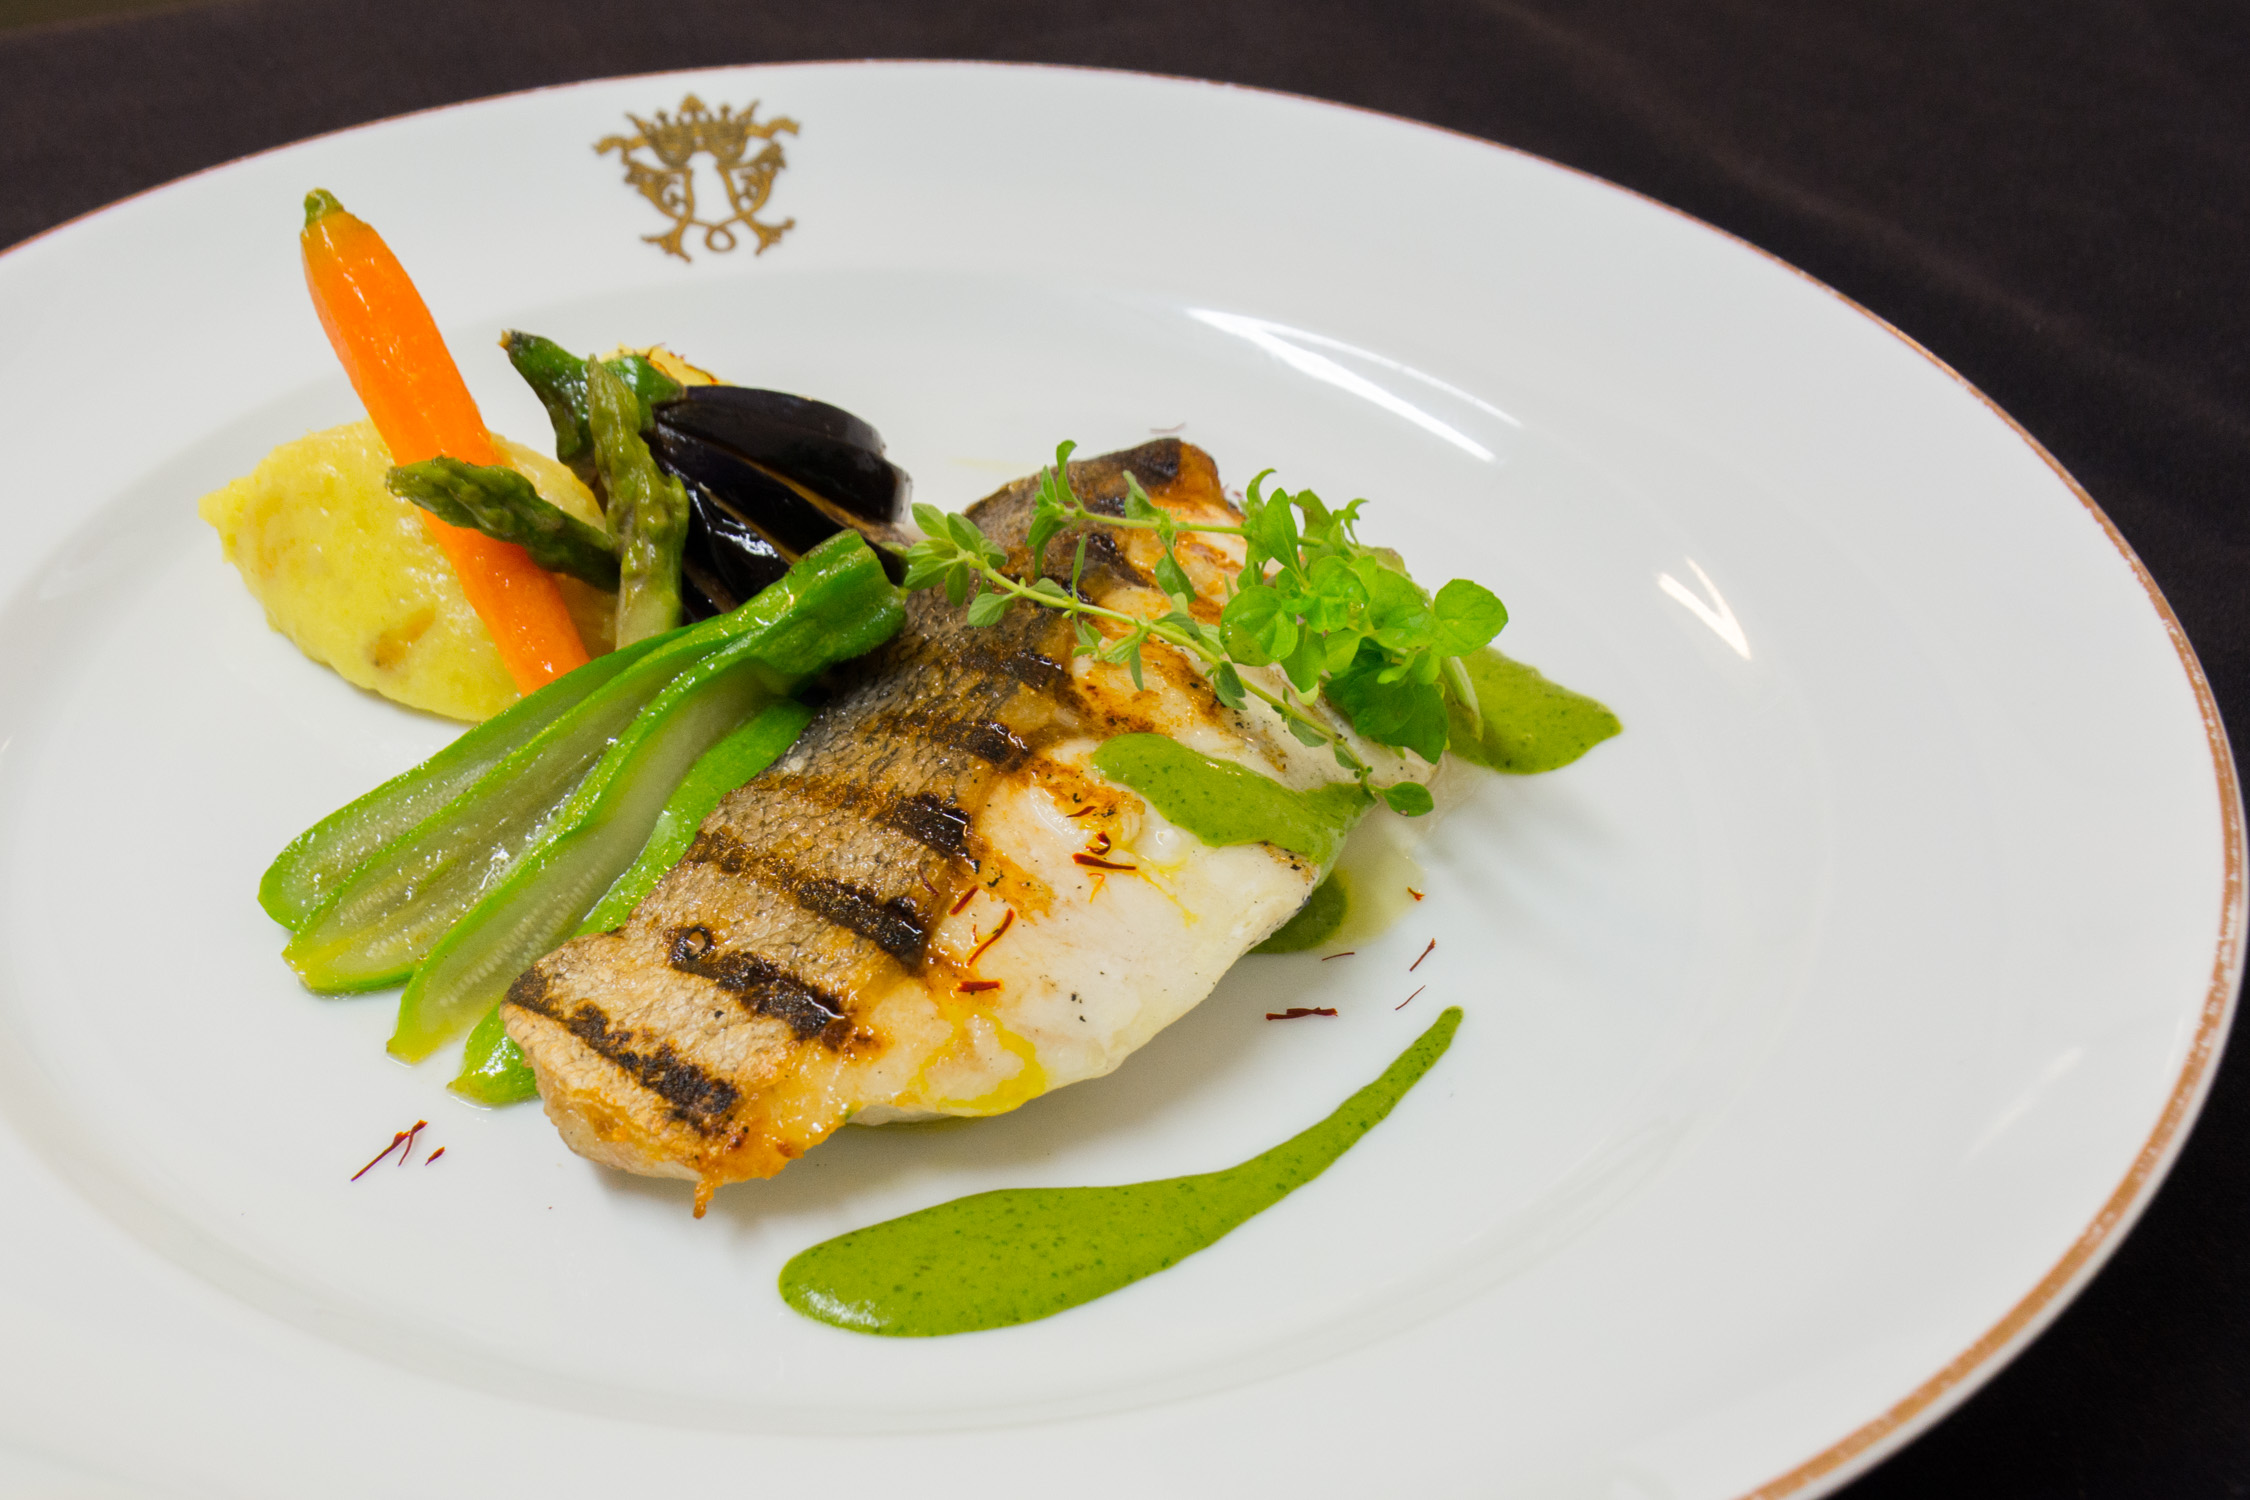 Perfectly cooked fresh fish from Valle Flôr